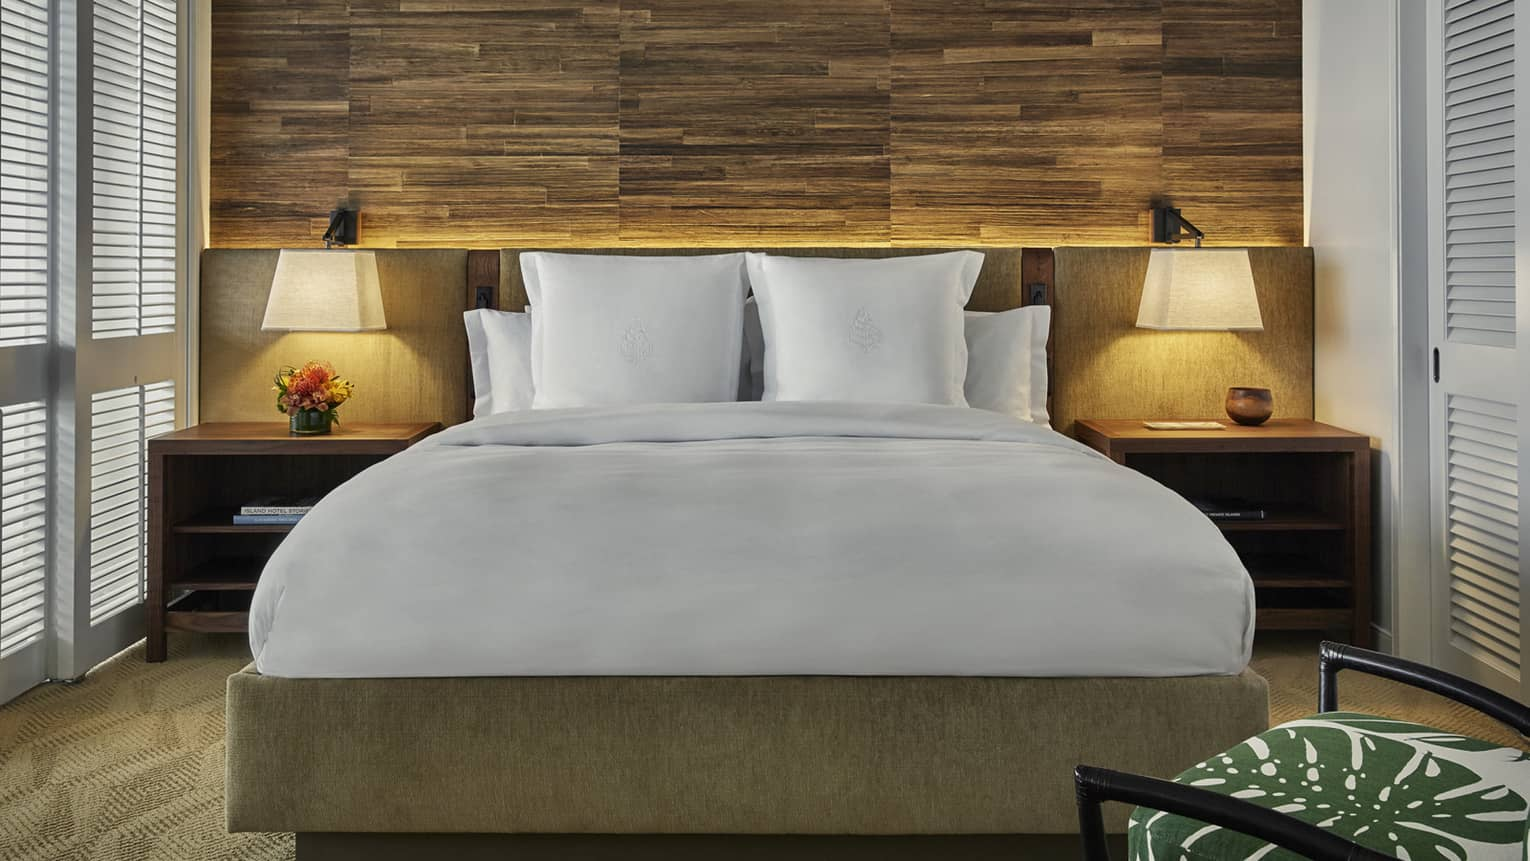 Bed with retro-style wood and upholstered headboard, nightstands, lamps, rustic wood wall